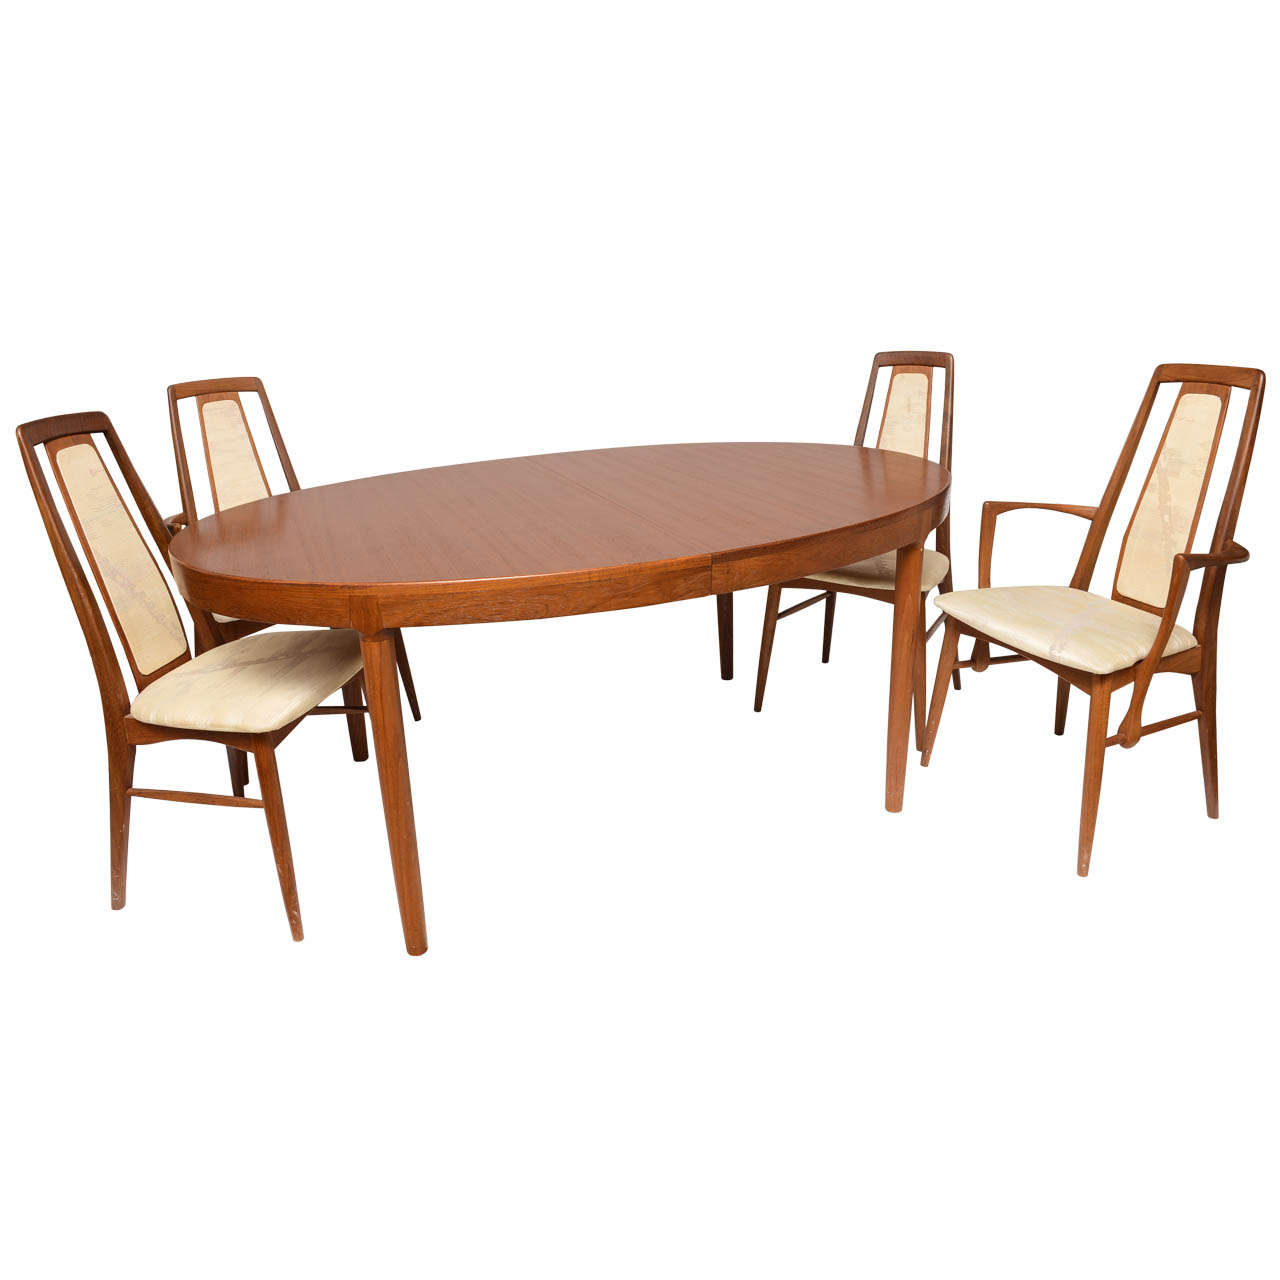 Teak Dining Table And Chairs: Koefoeds Danish Teak MCM Dining Table With Eight Chairs At